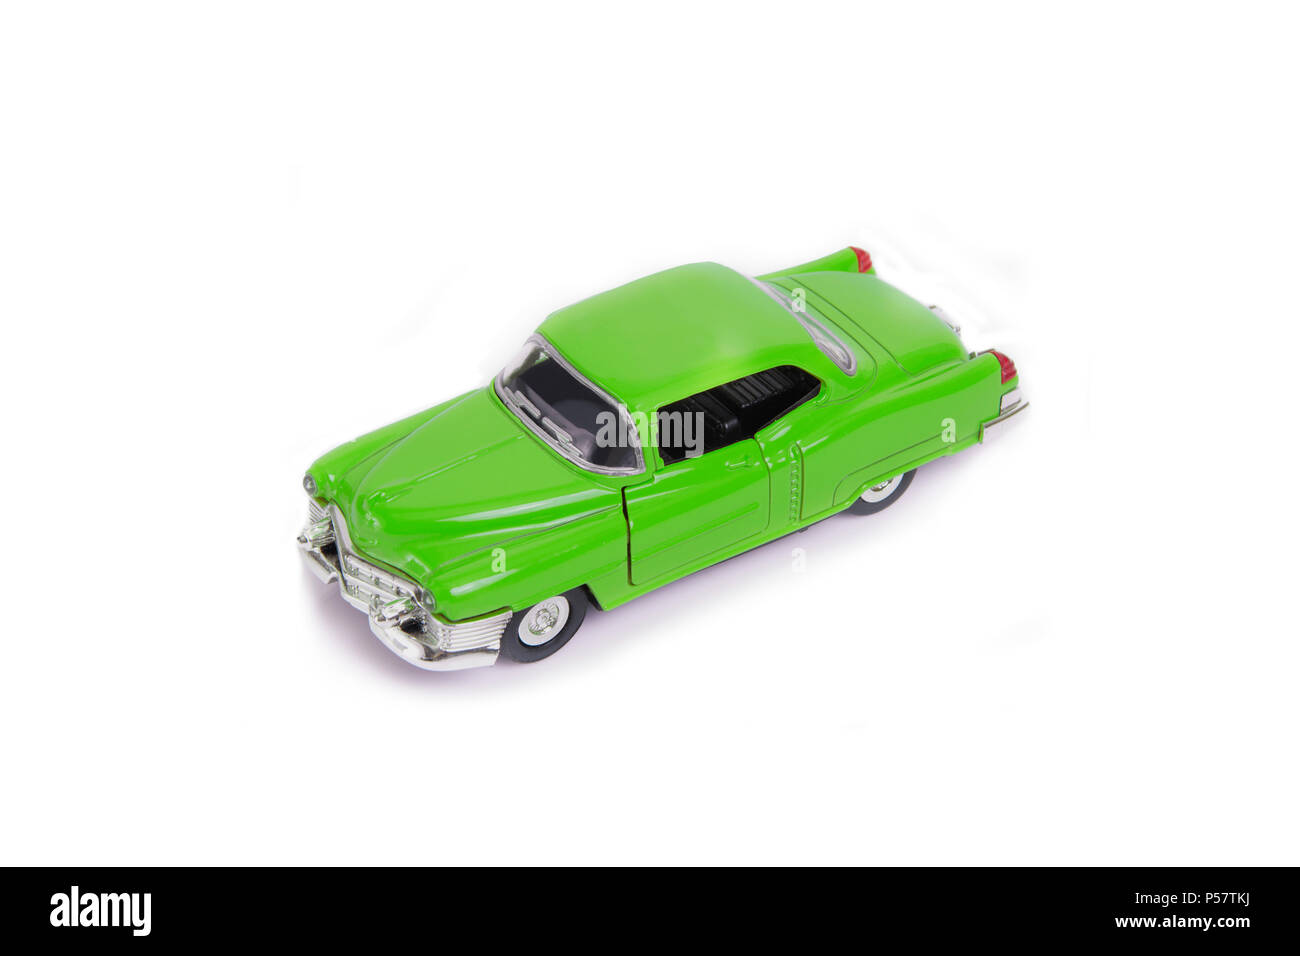 Green model toy car in retro style on white background. - Stock Image